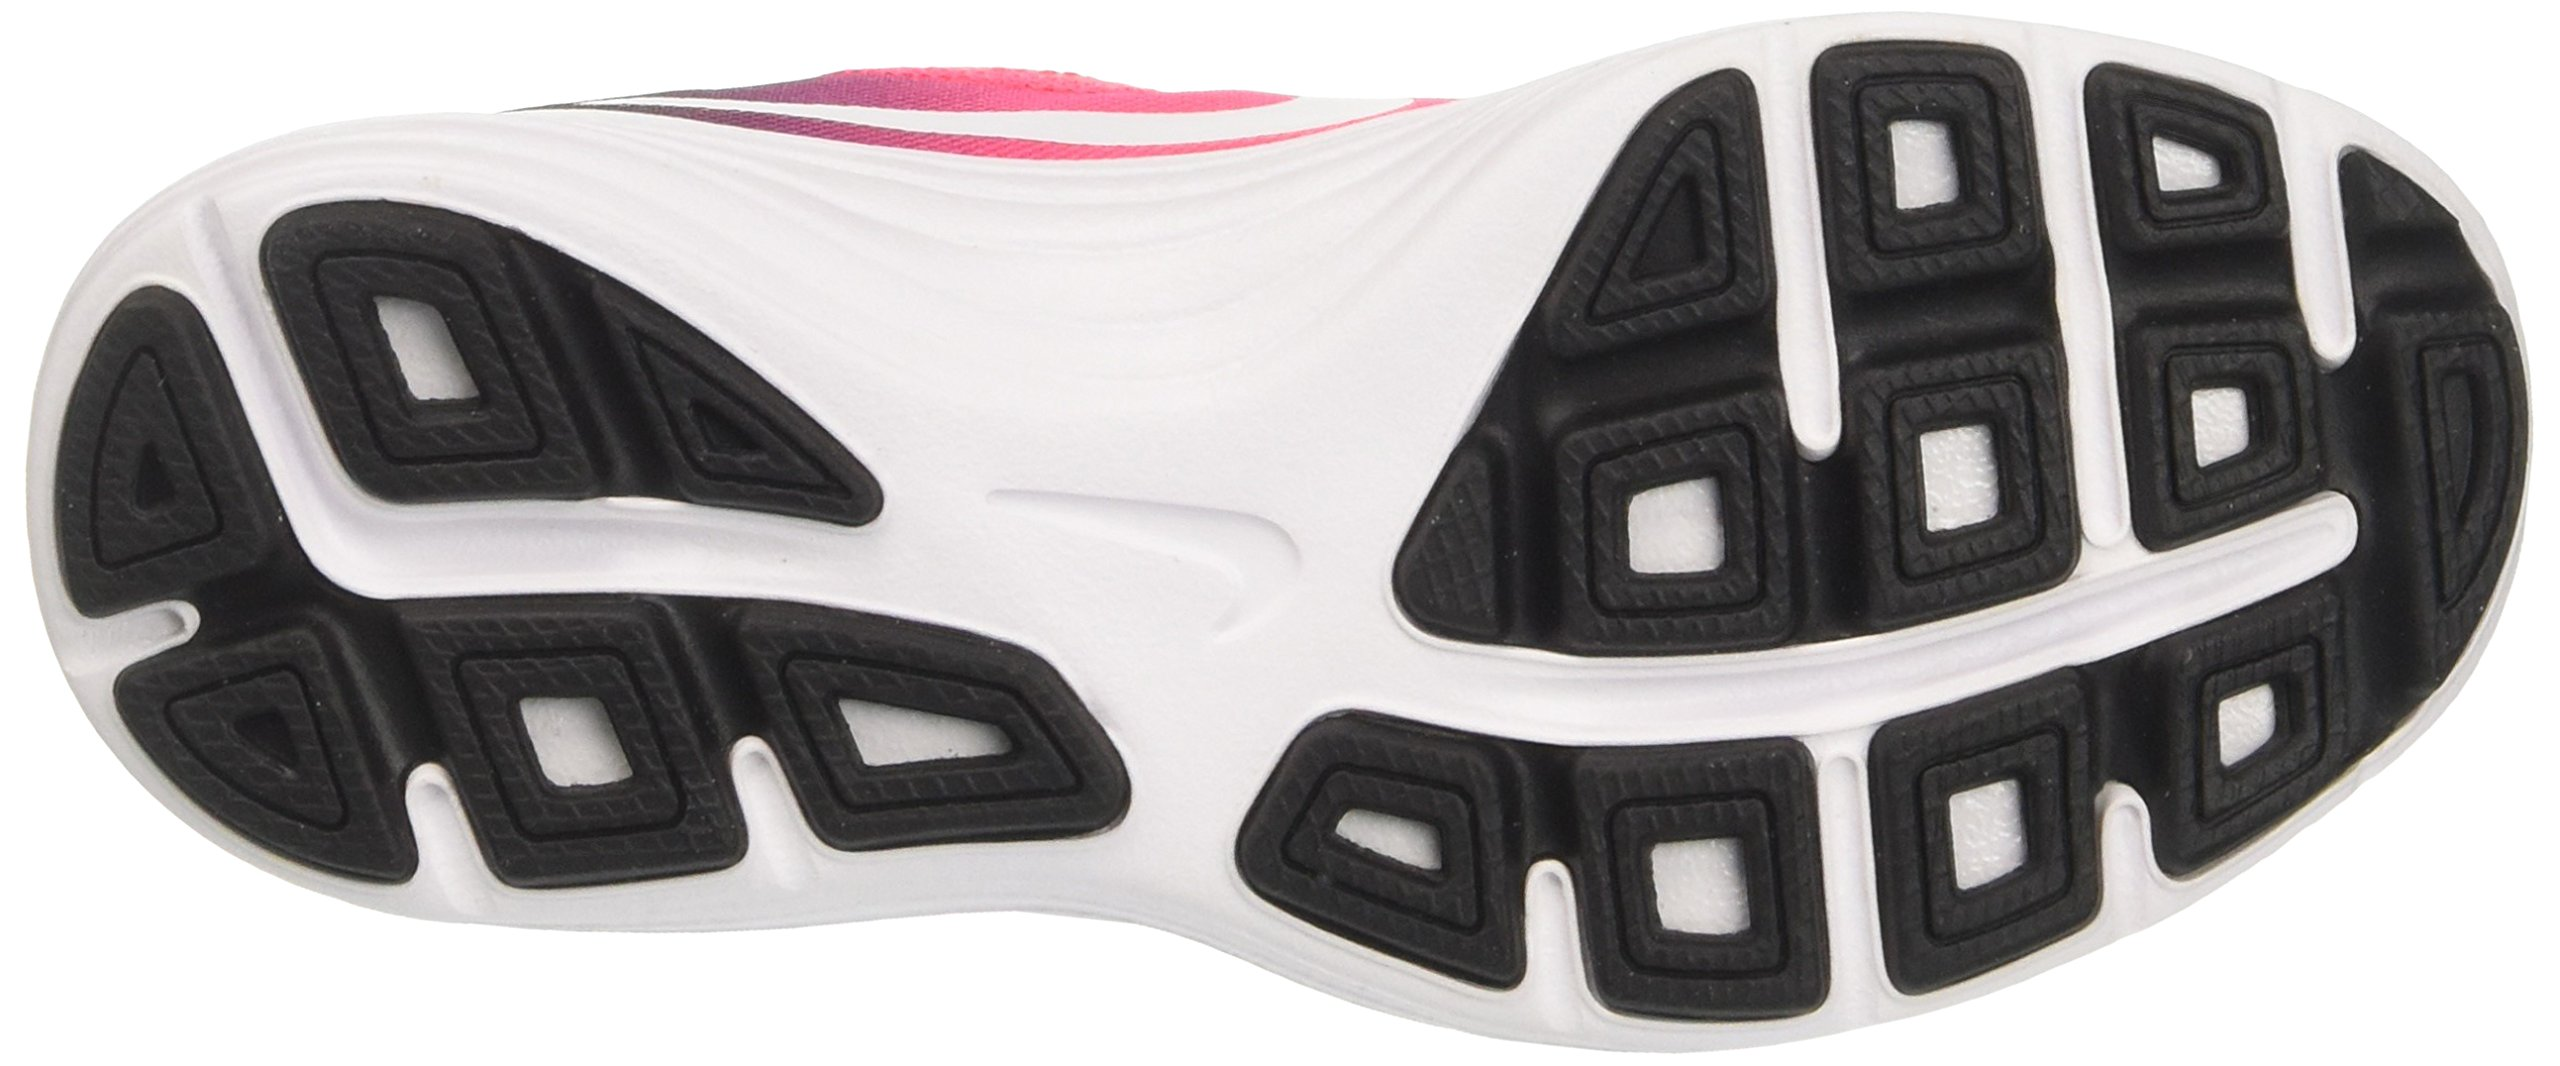 NIKE Kids' Revolution 3 (Psv) Running-Shoes, Black/White/Racer Pink/Black, 1 M US Little Kid by Nike (Image #3)